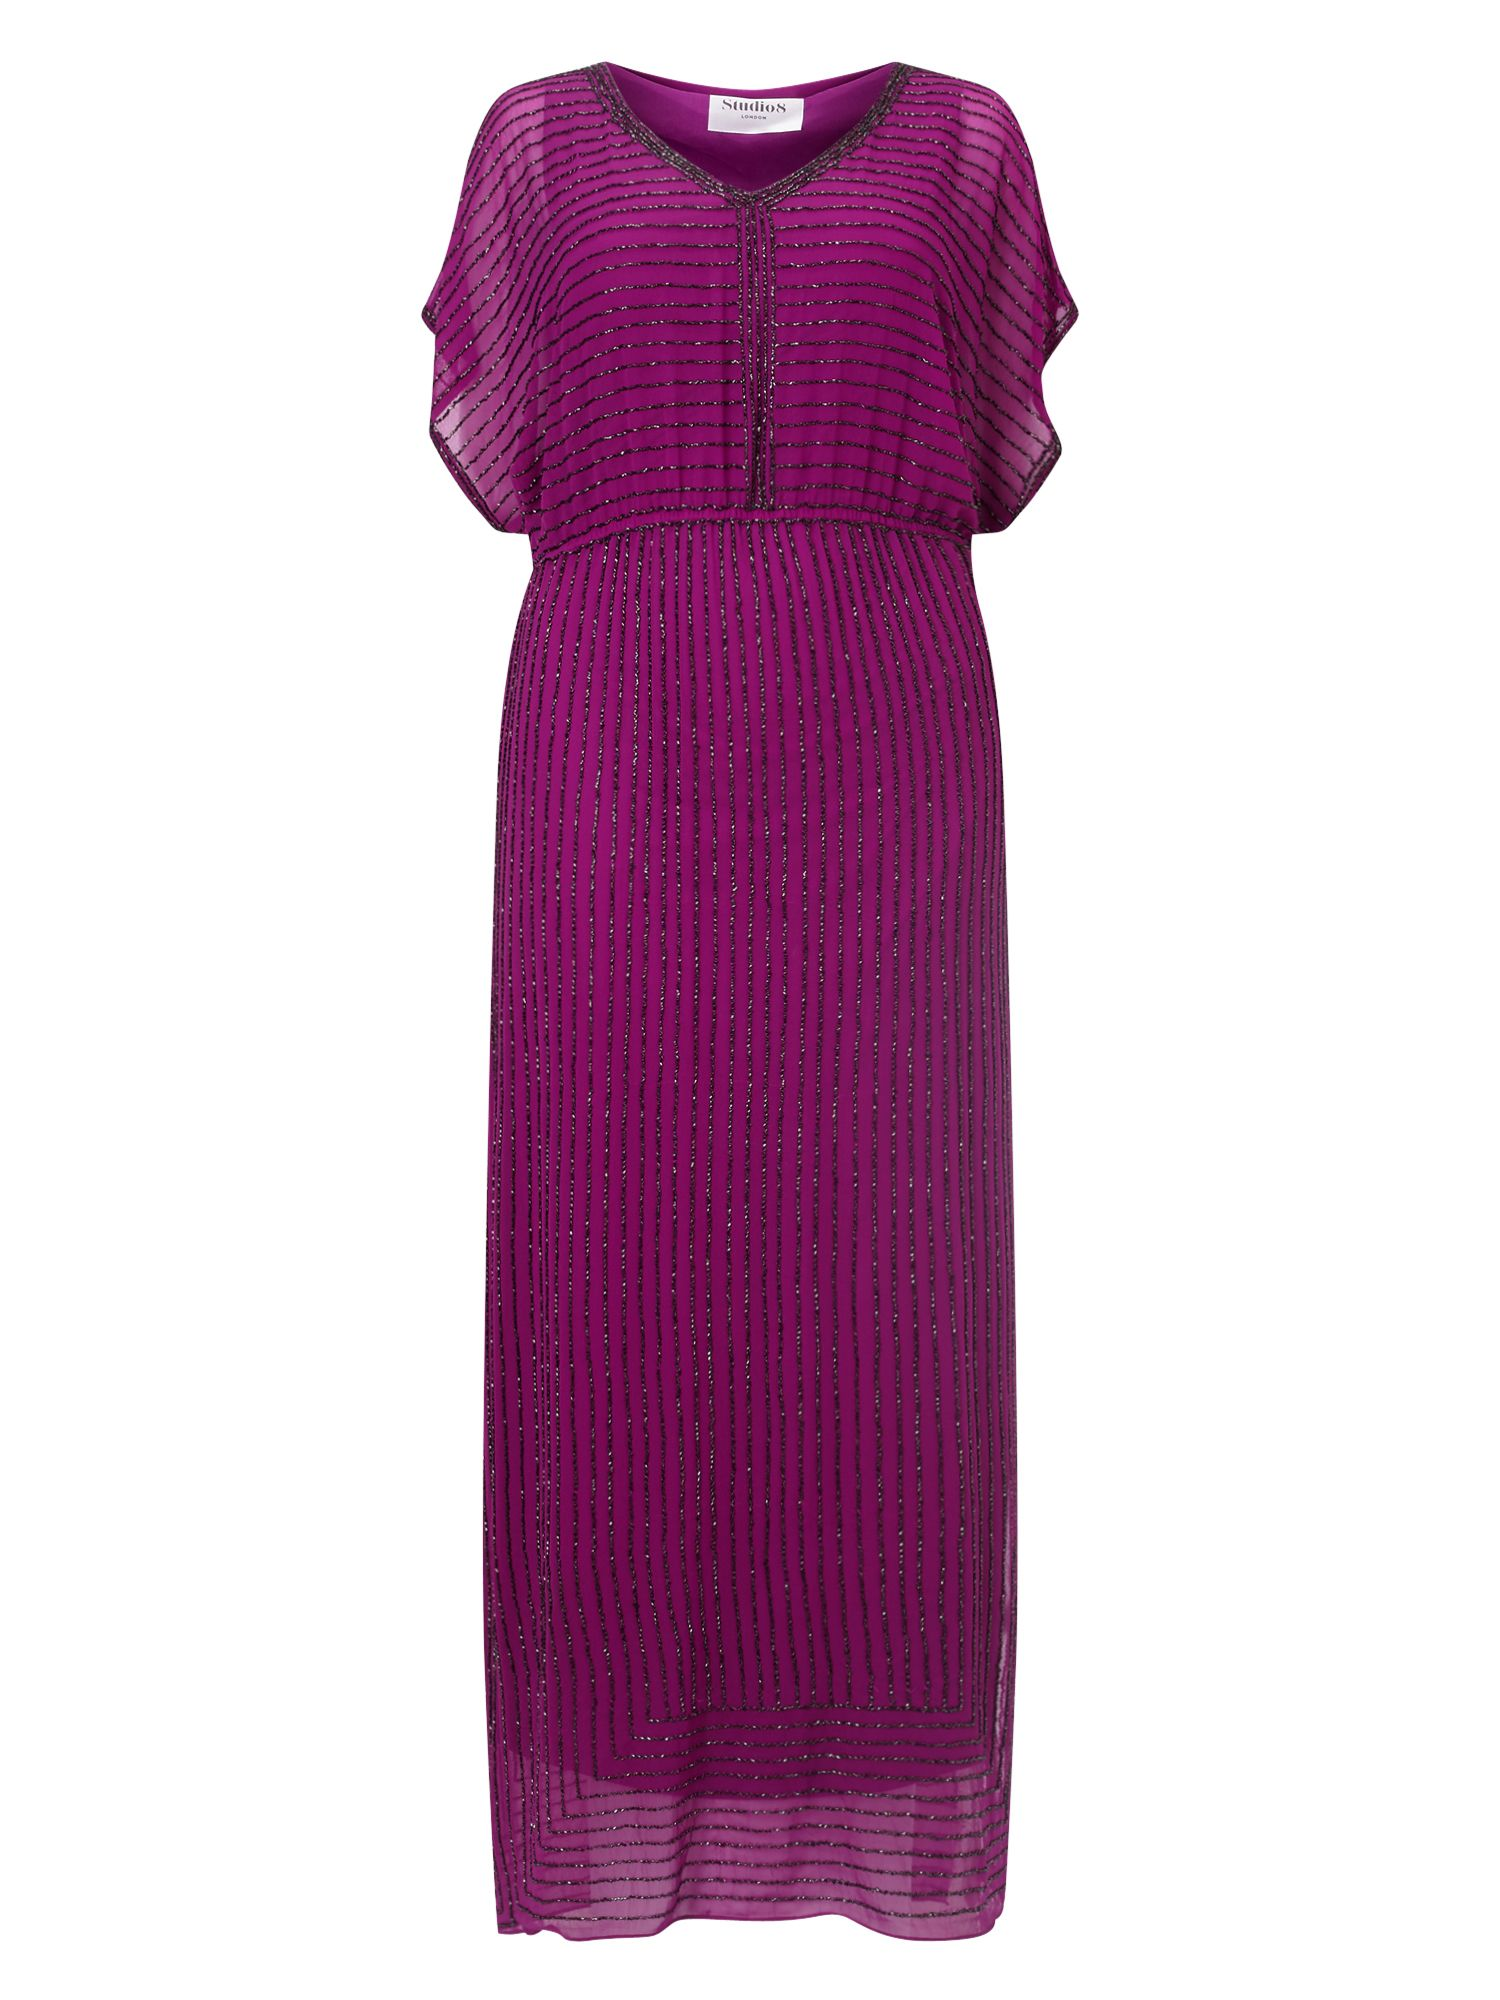 Studio 8 Verina Dress, Purple